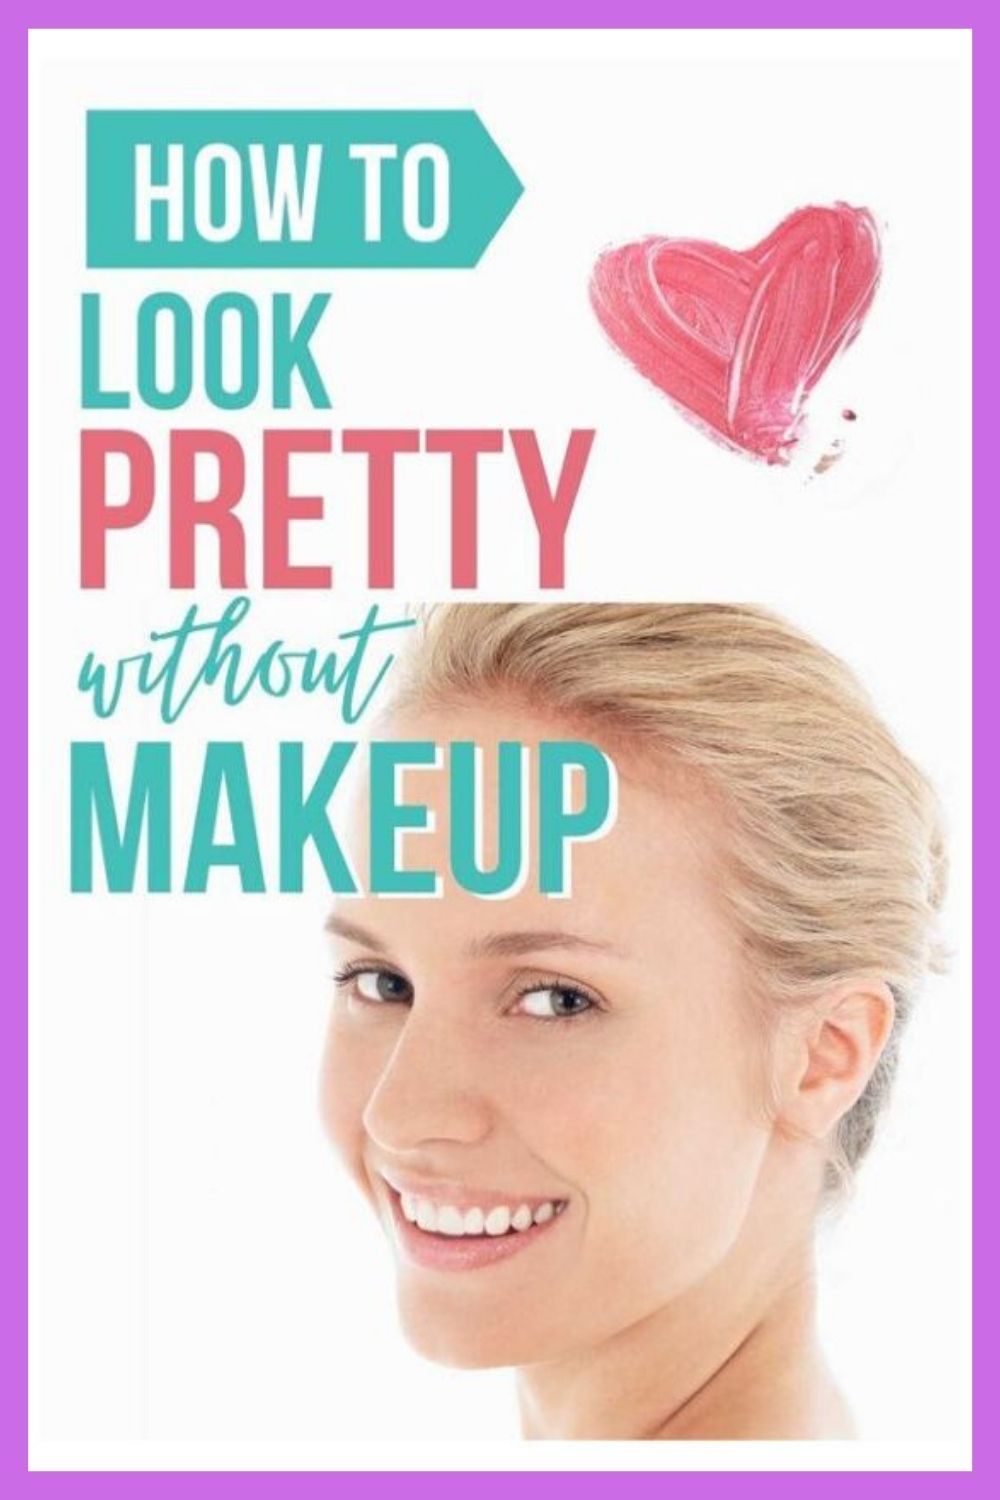 How to Look Pretty Without Makeup in 2020 How to look